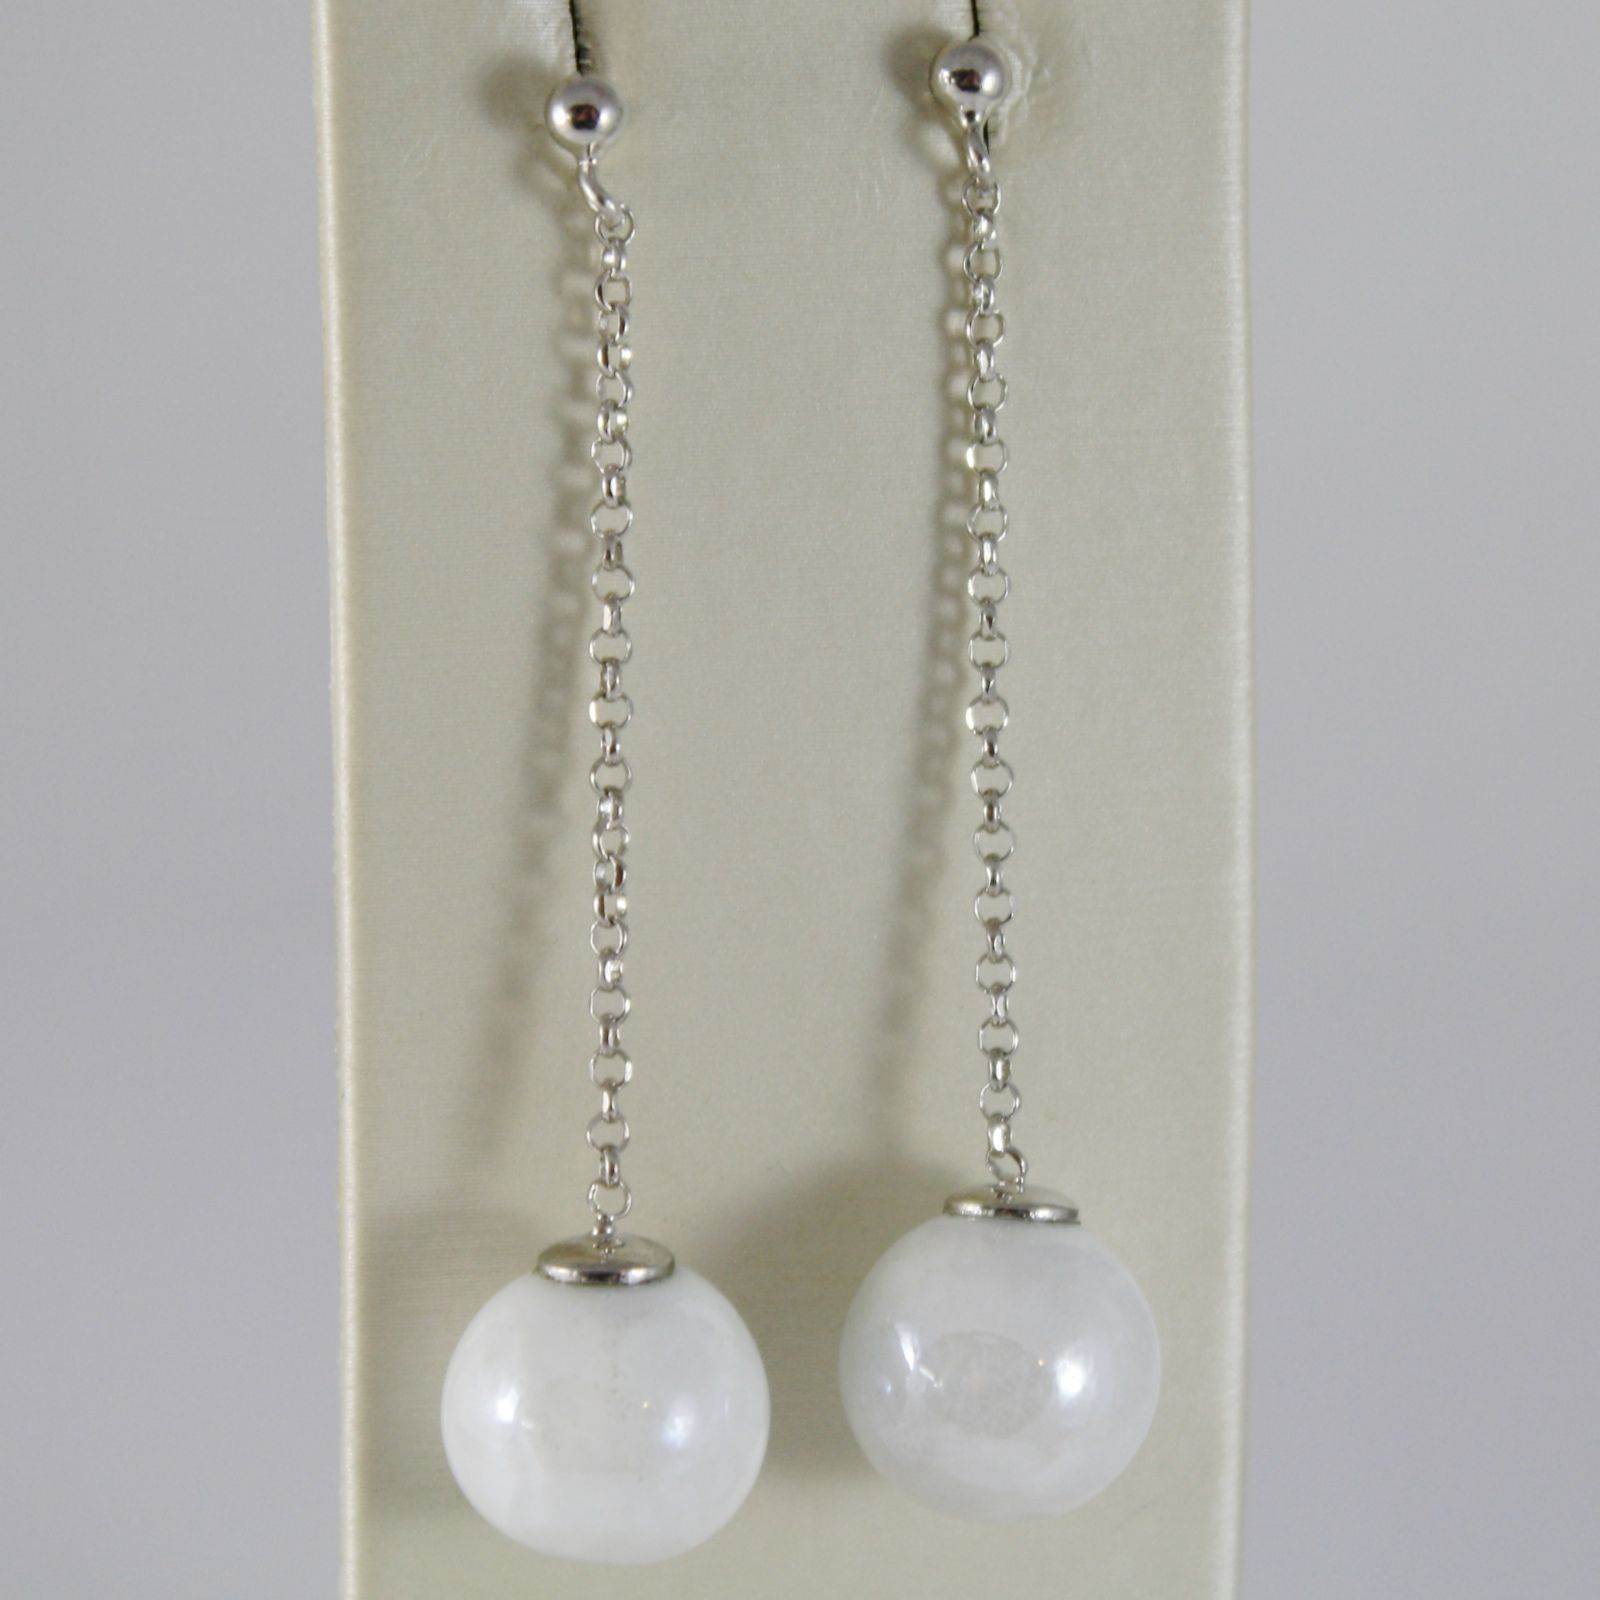 ANTICA MURRINA VENEZIA 12 MM WHITE SPHERE BALLS PENDANT 5.3 CM EARRINGS NEREIDE